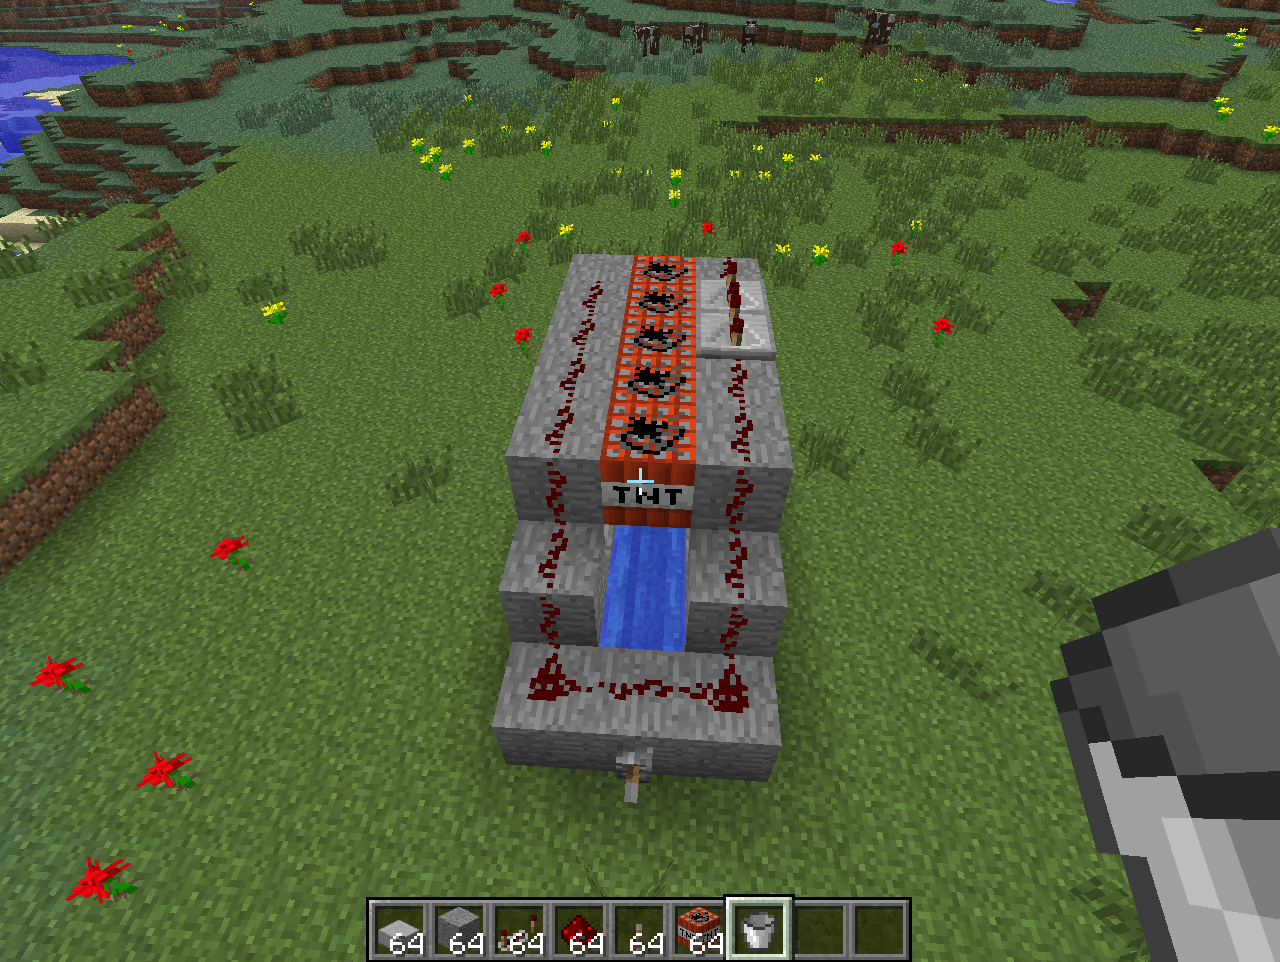 Minecraft T.N.T cannon